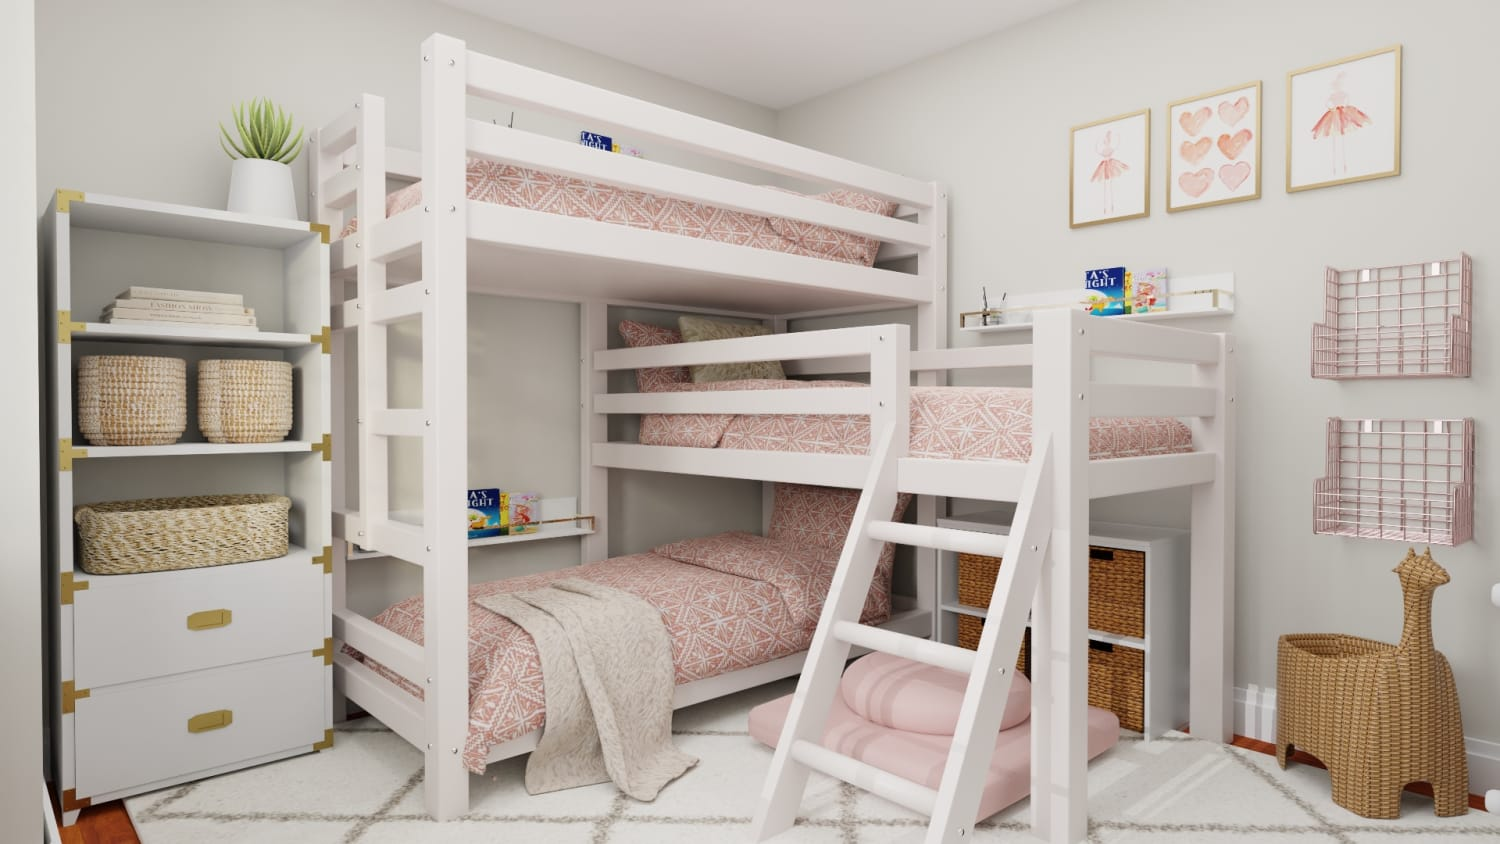 The Most Functional & Adorable Kids Bedroom Design Design By Spacejoy